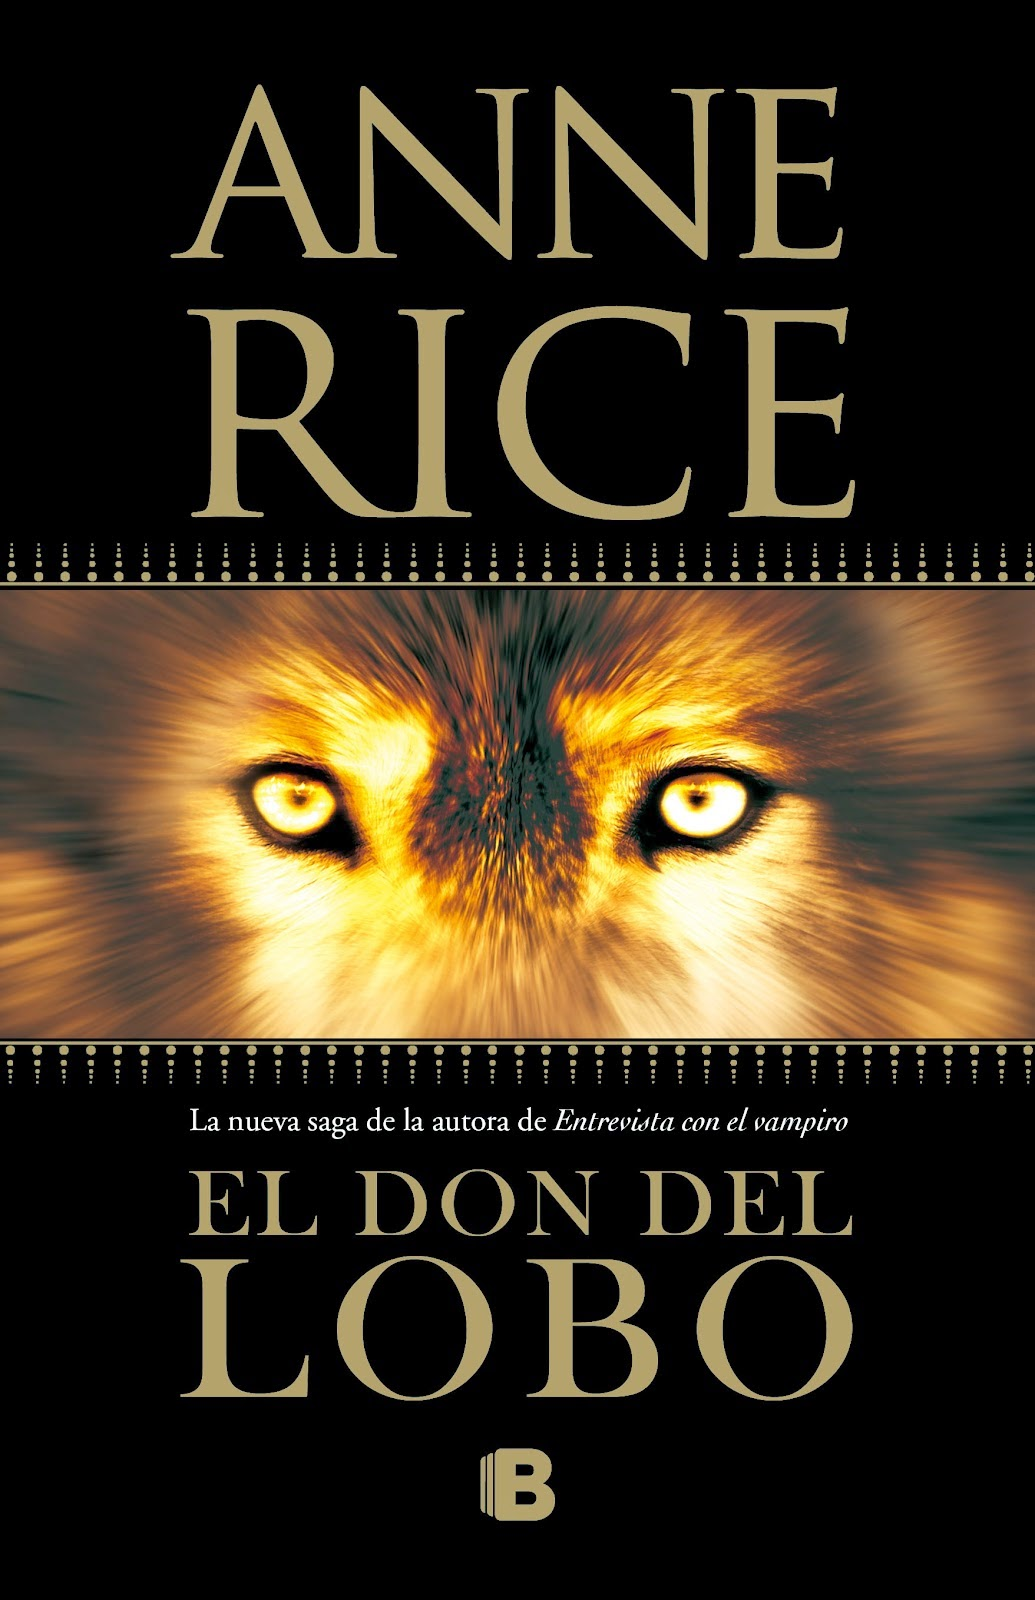 El don del lobo Anne rice